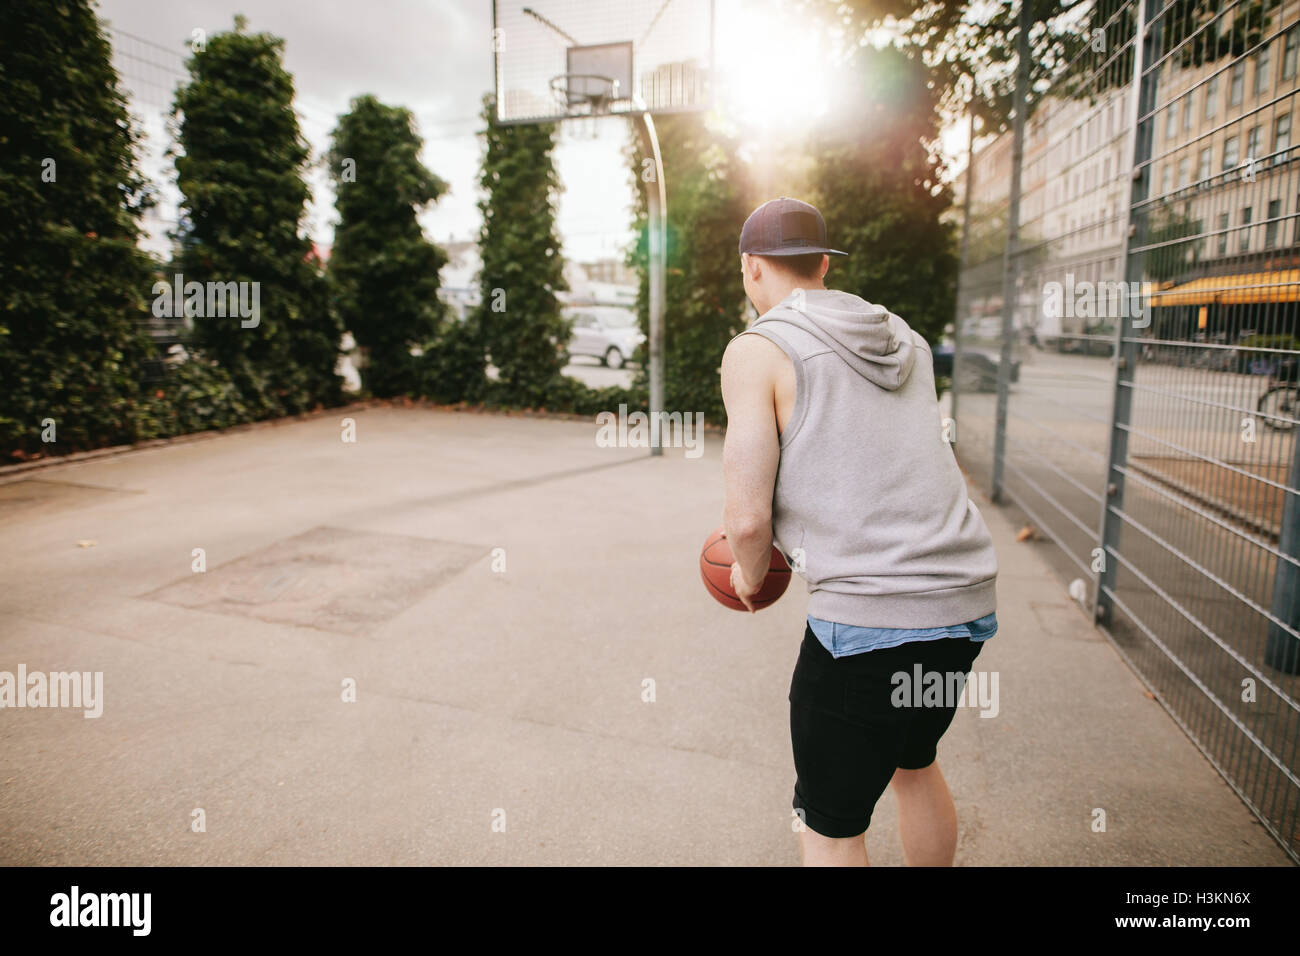 Rear view shot of a streetball player playing basketball. Young guy playing basketball on outdoor court. - Stock Image